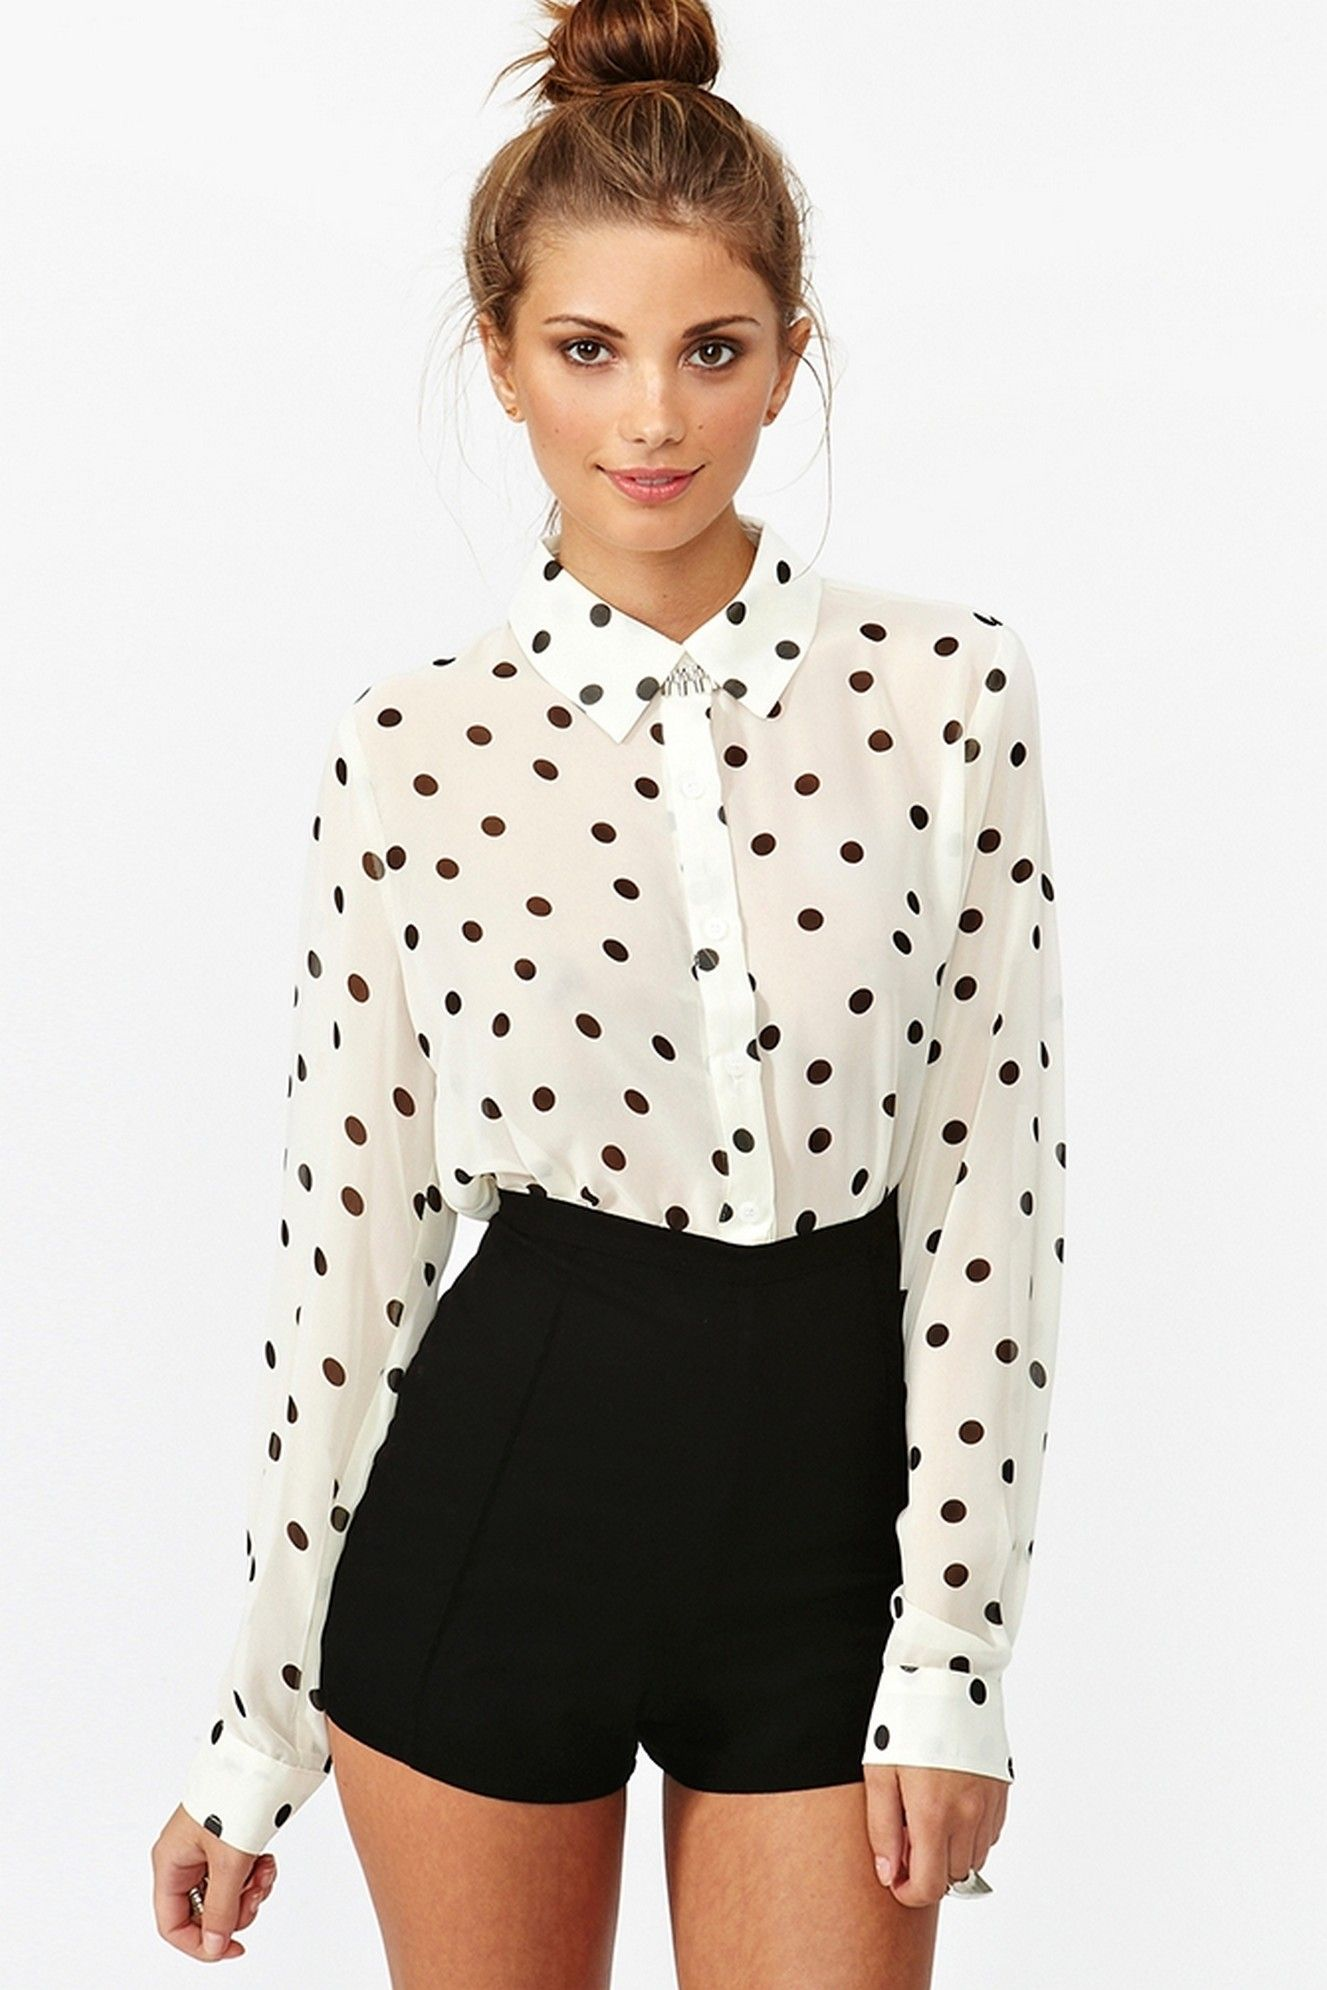 25 polka cool dot outfit